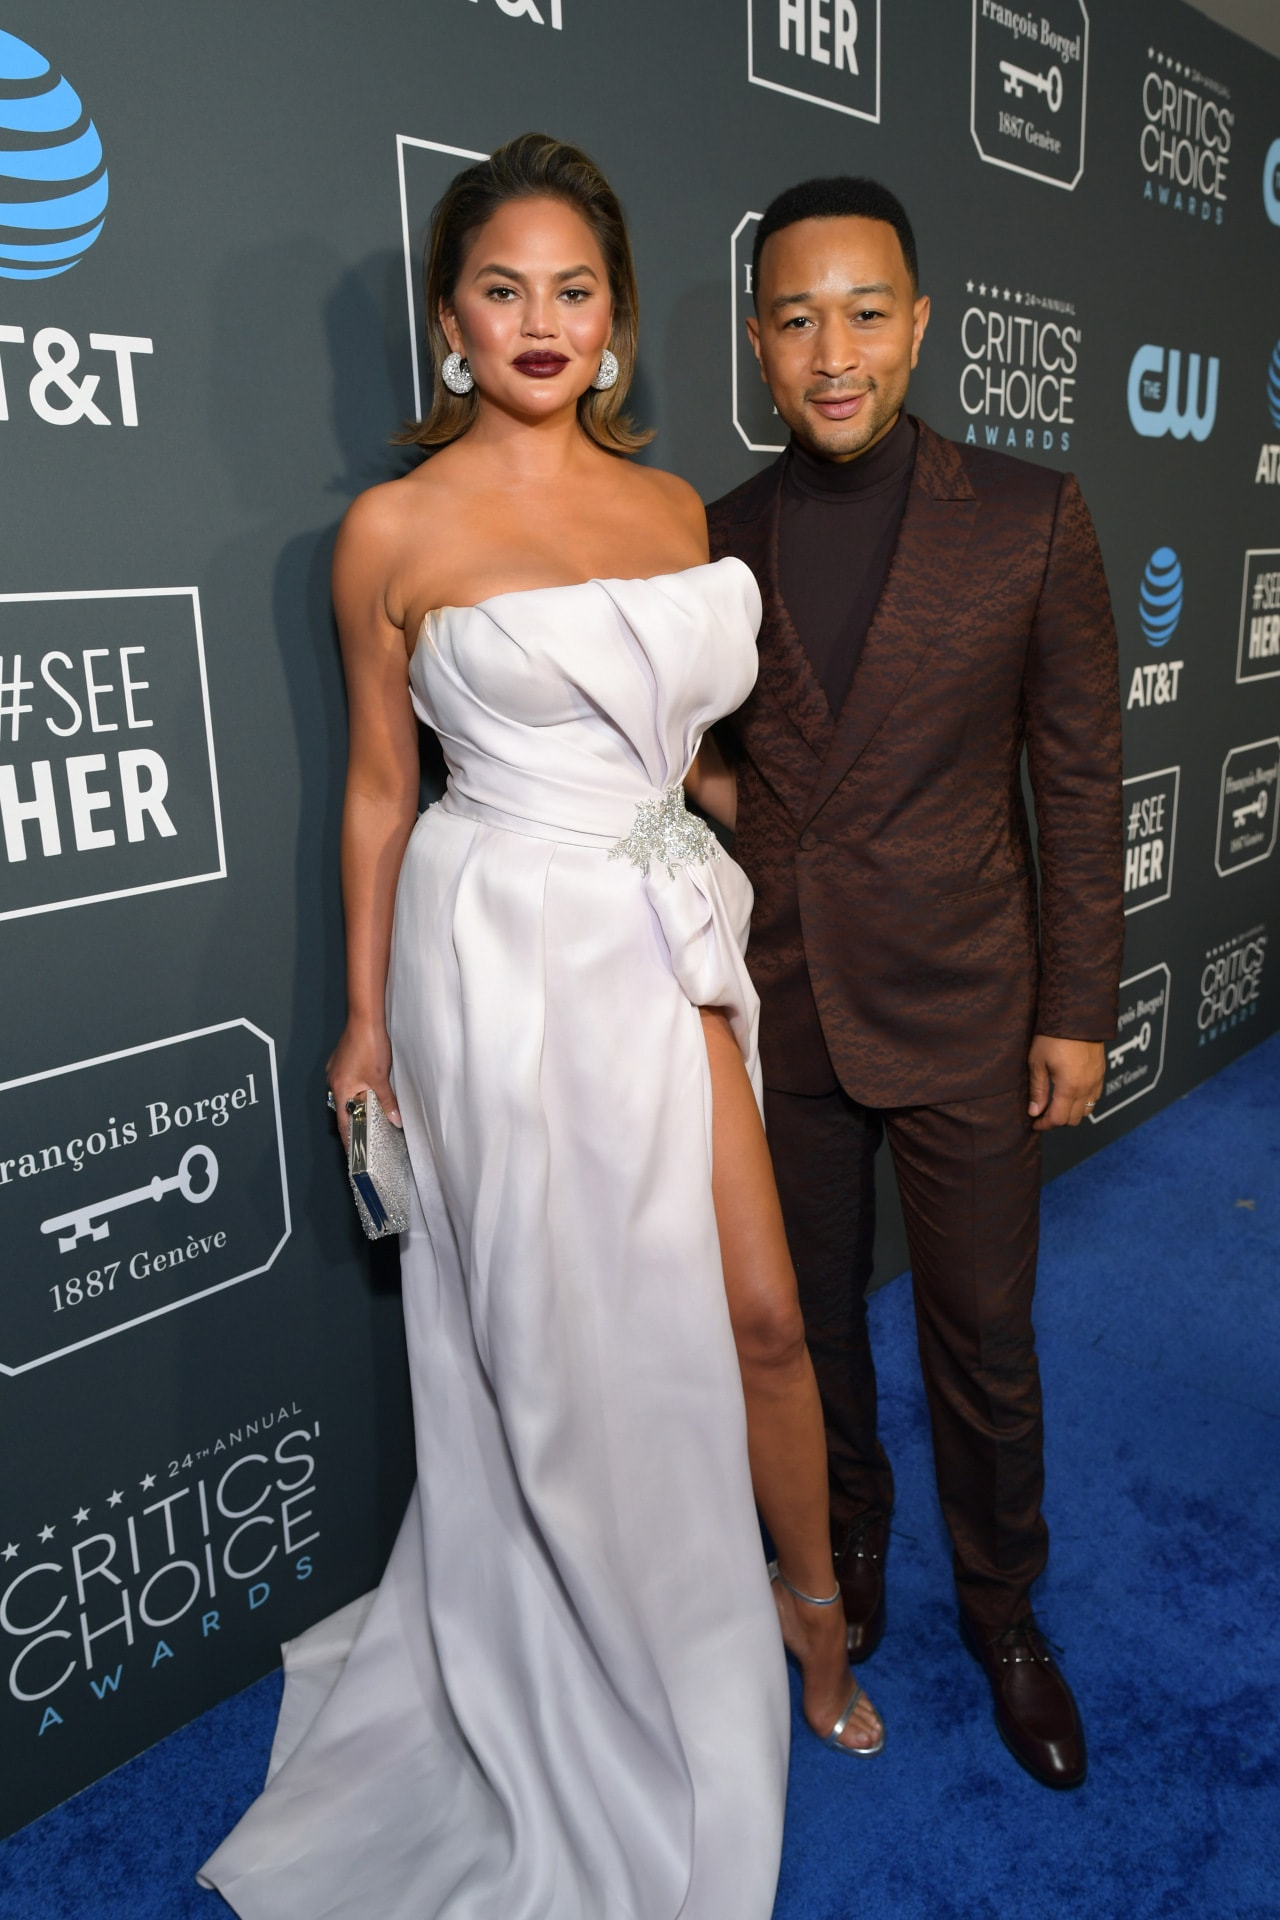 Chrissy Teigen and John Legend got into a big fight at Kim Kardashian's wedding